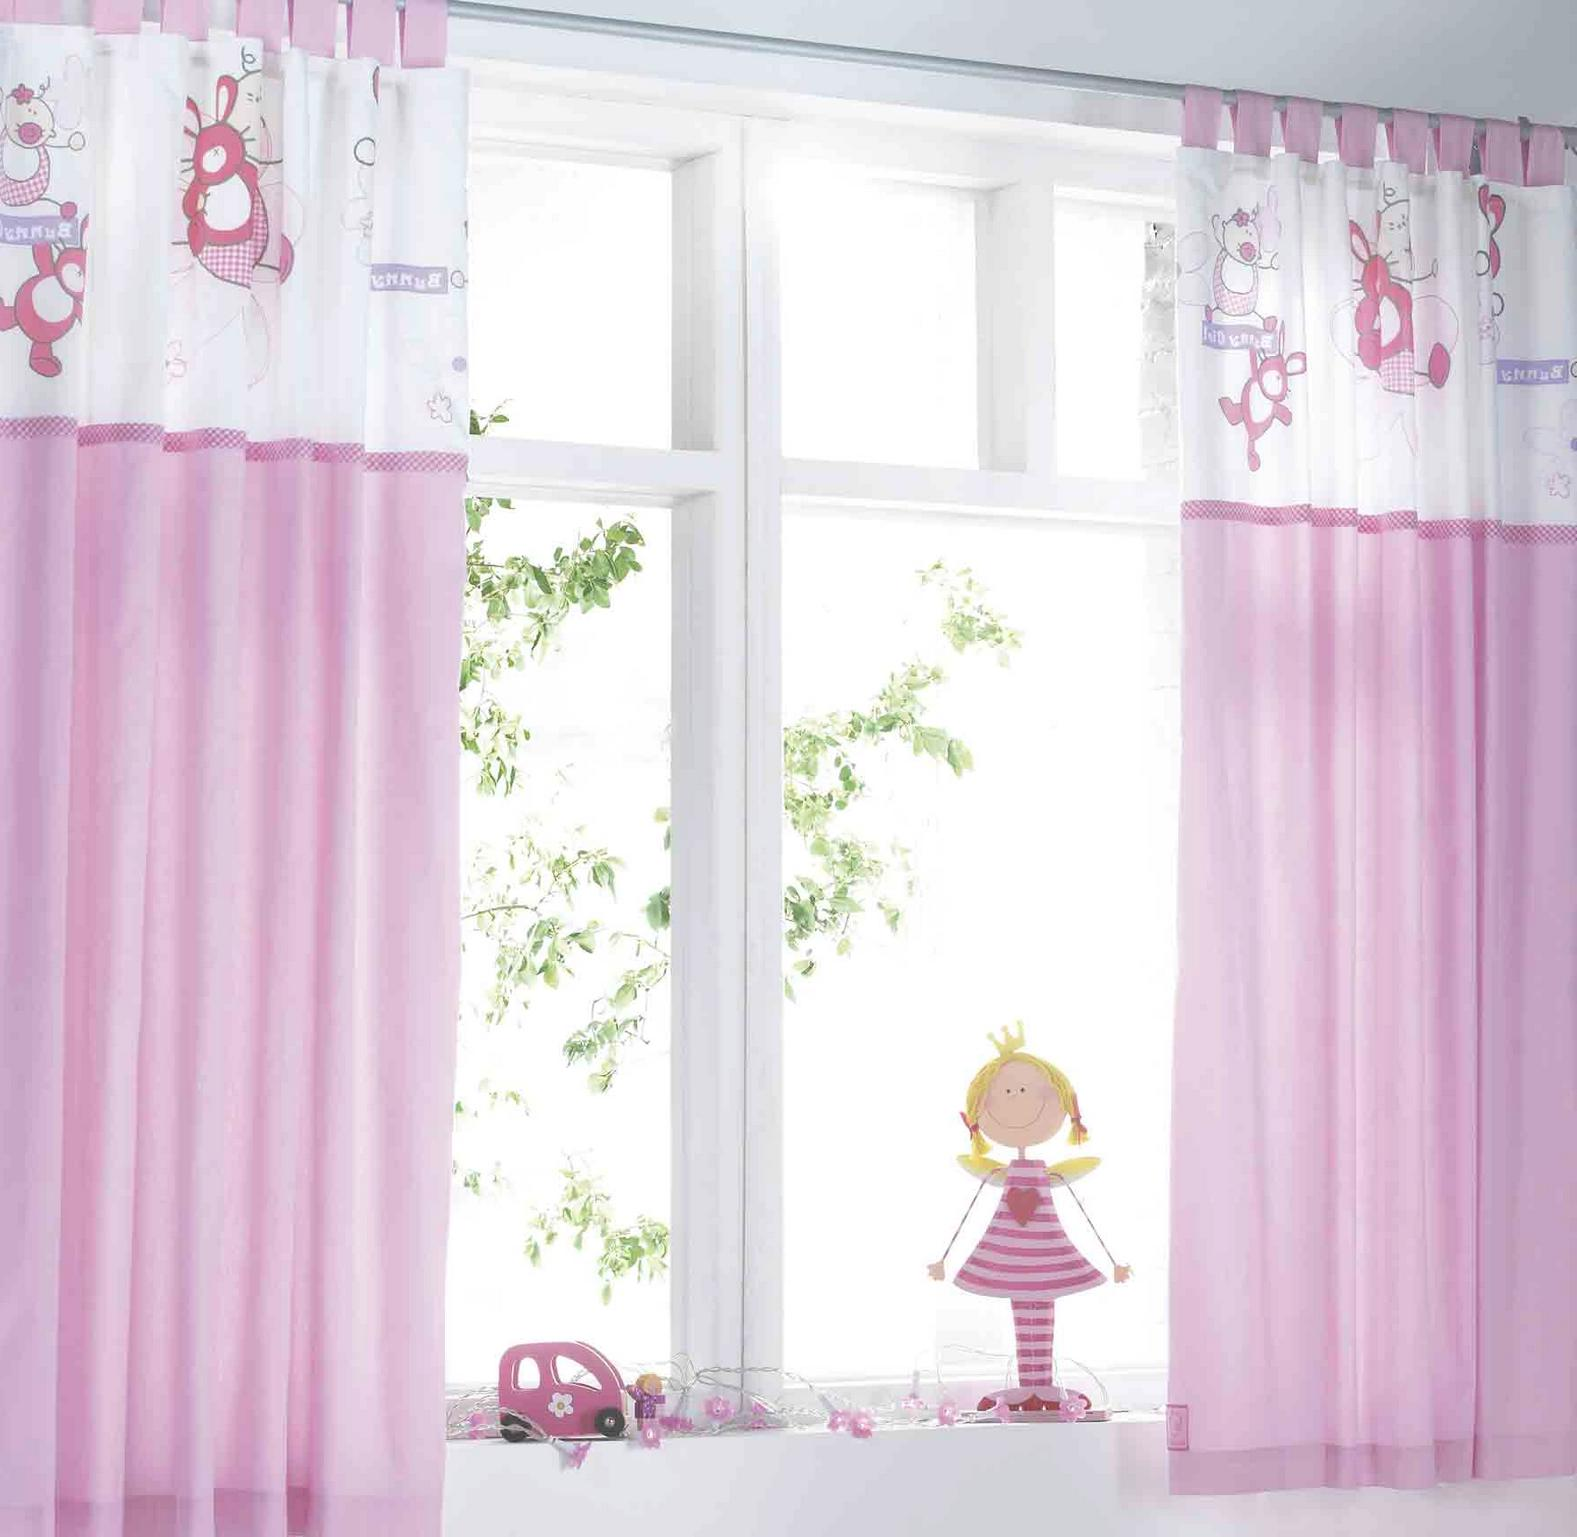 Cute window treatment kids bedroom curtains custom home design - Tende camera bimba ...